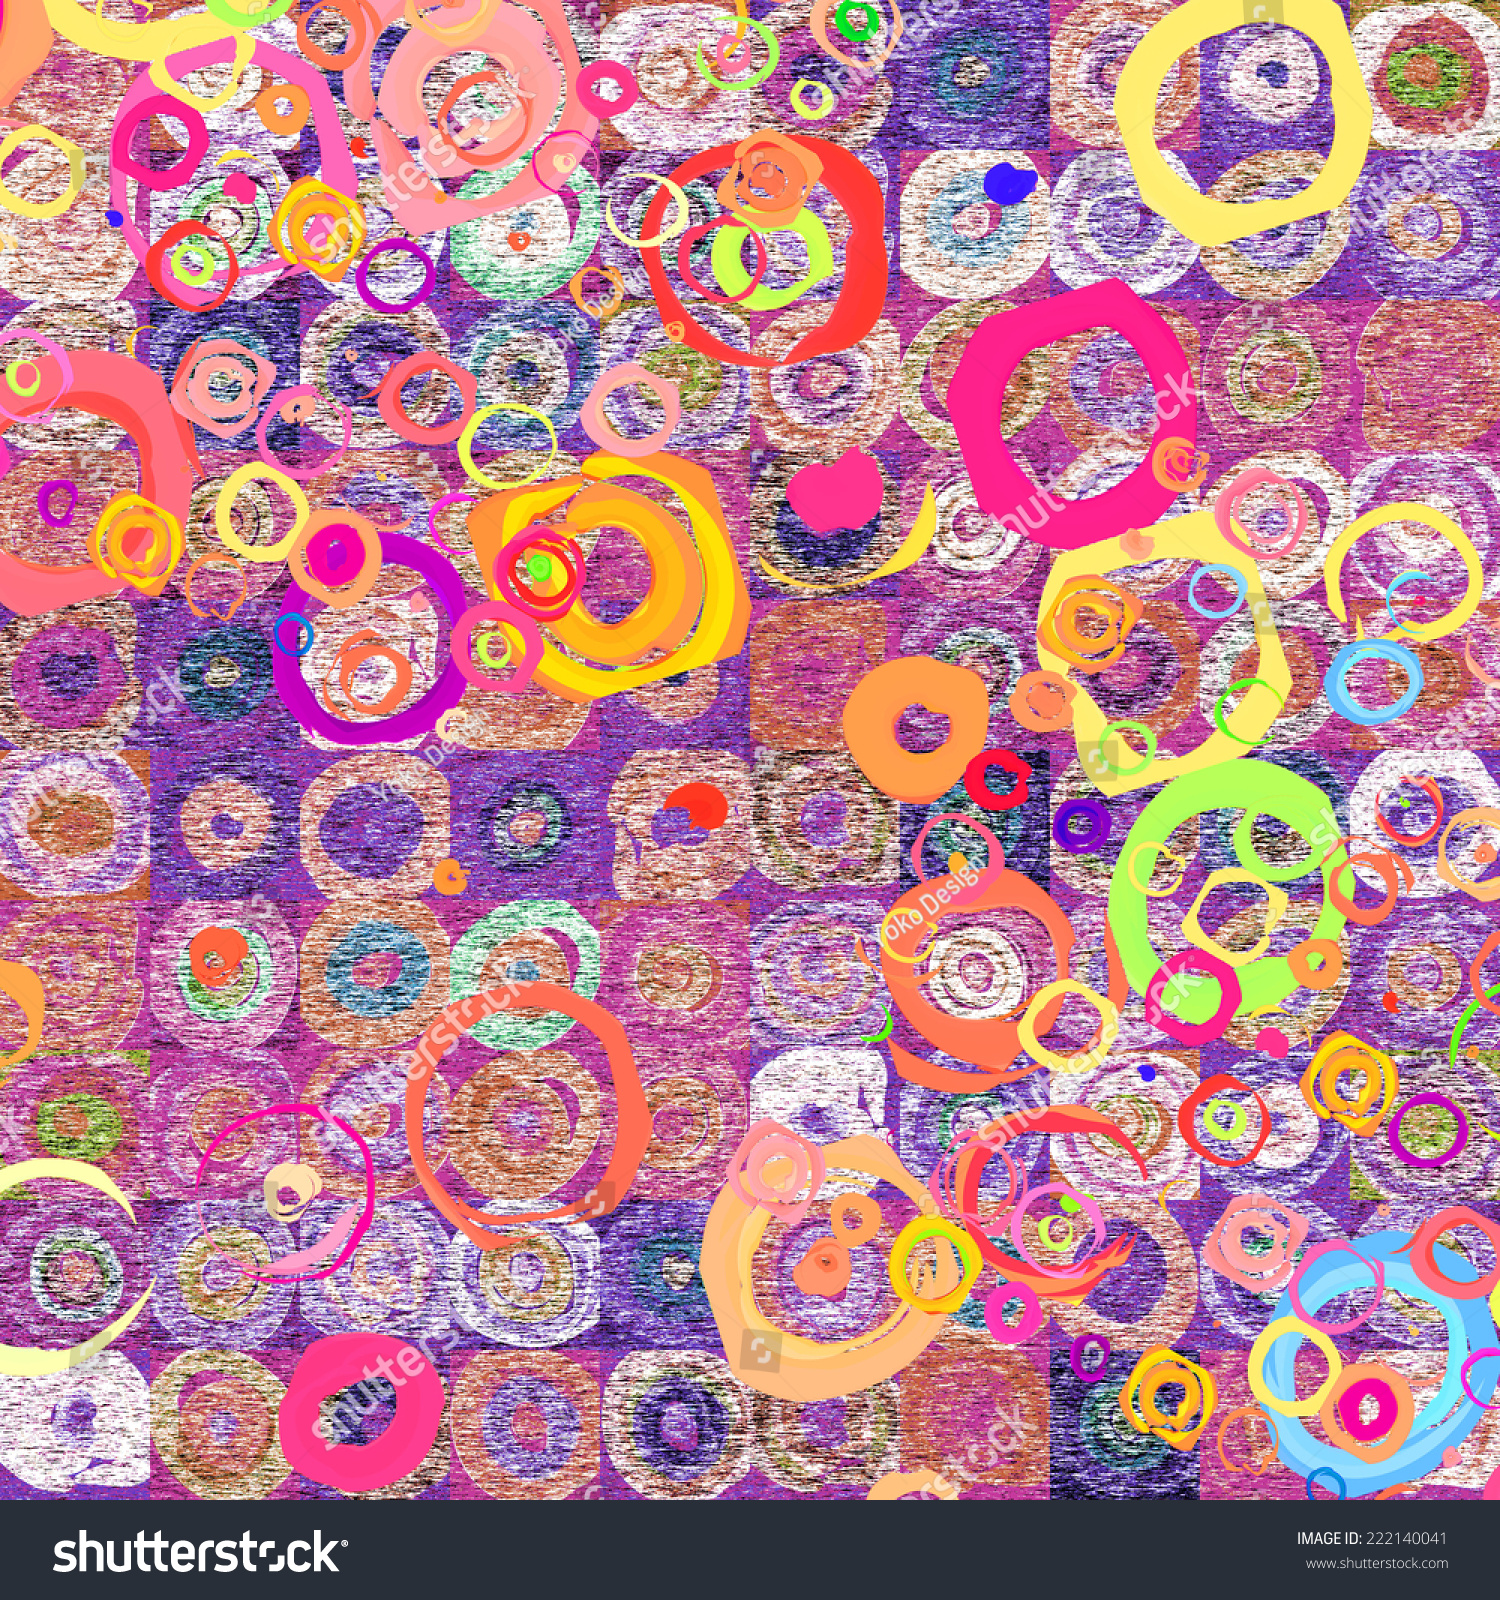 abstract funky pattern wallpaper - photo #6